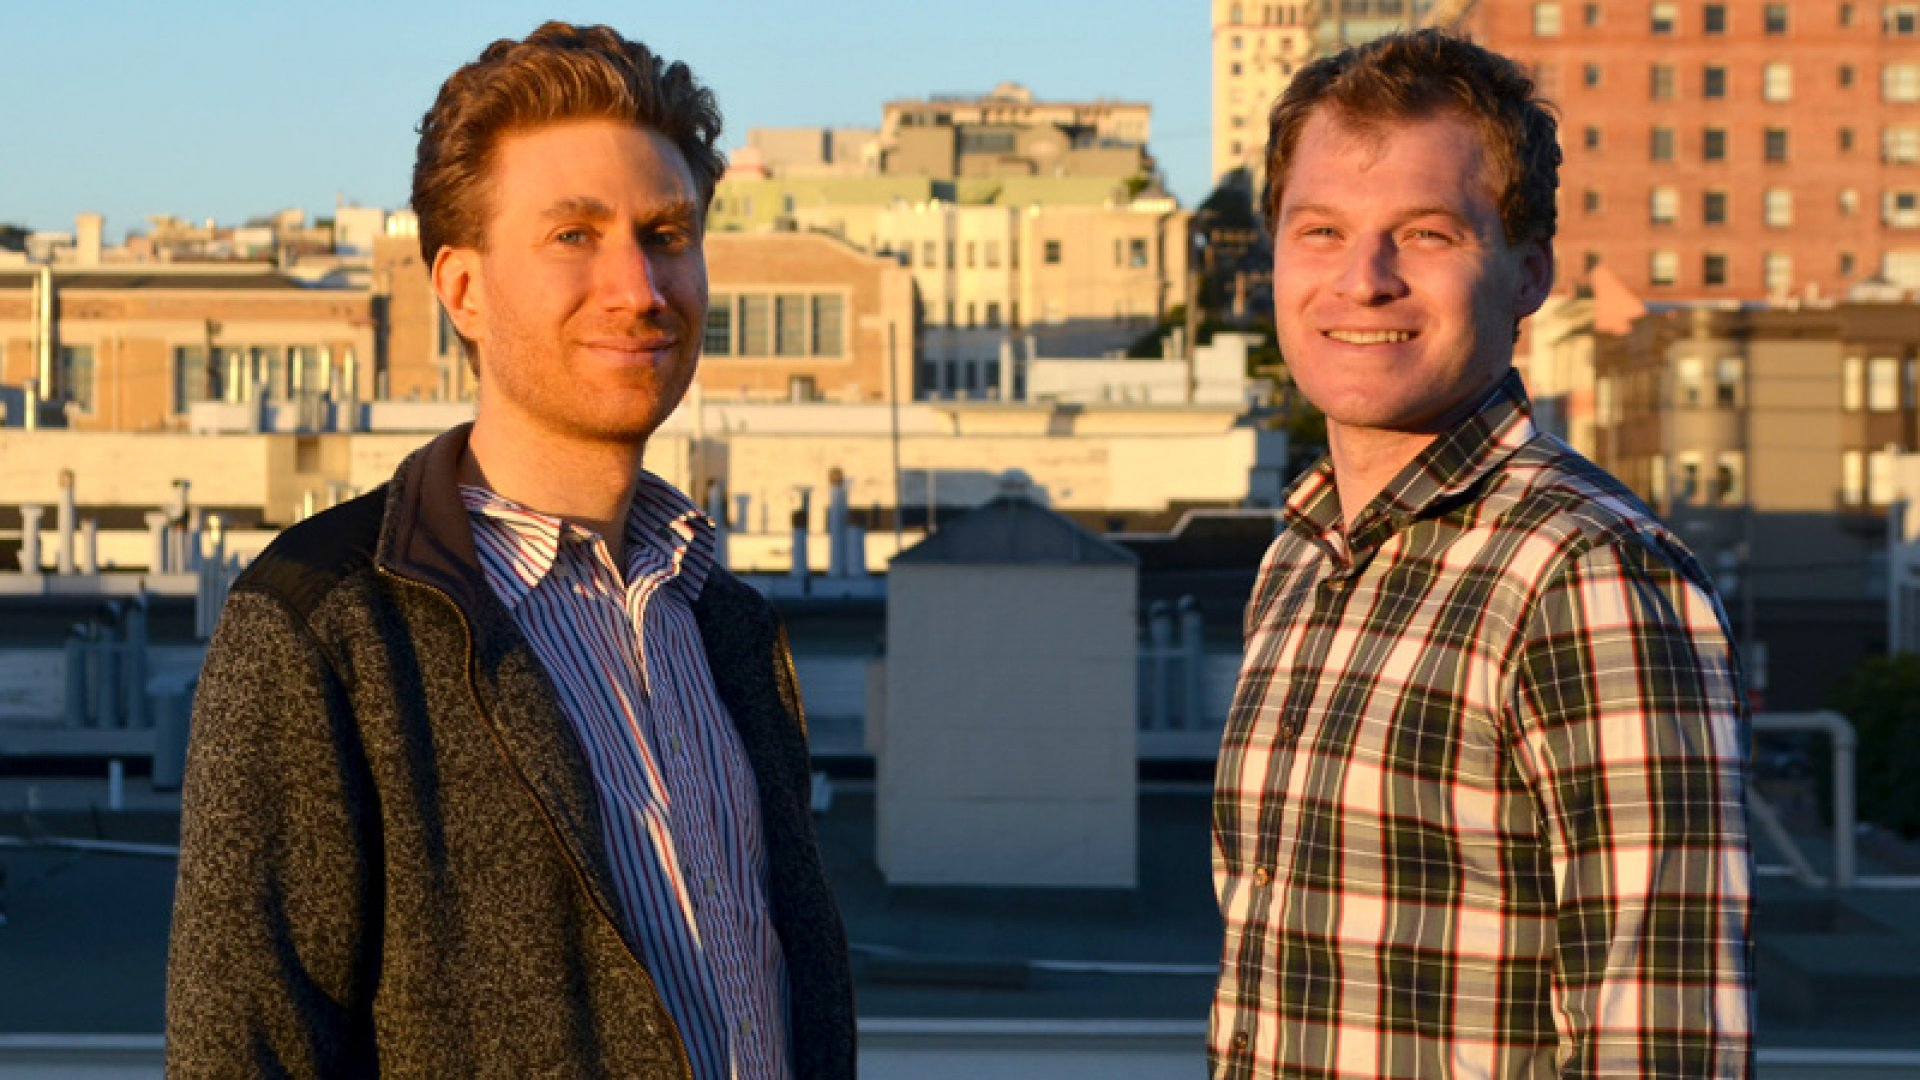 """Scribd co-founders Jared Friedman (left) and Trip Adler (right) decided to pivot the business last year. """"We realized the best way to monetize content was through a subscription model,"""" Adler says. <br> <br>"""